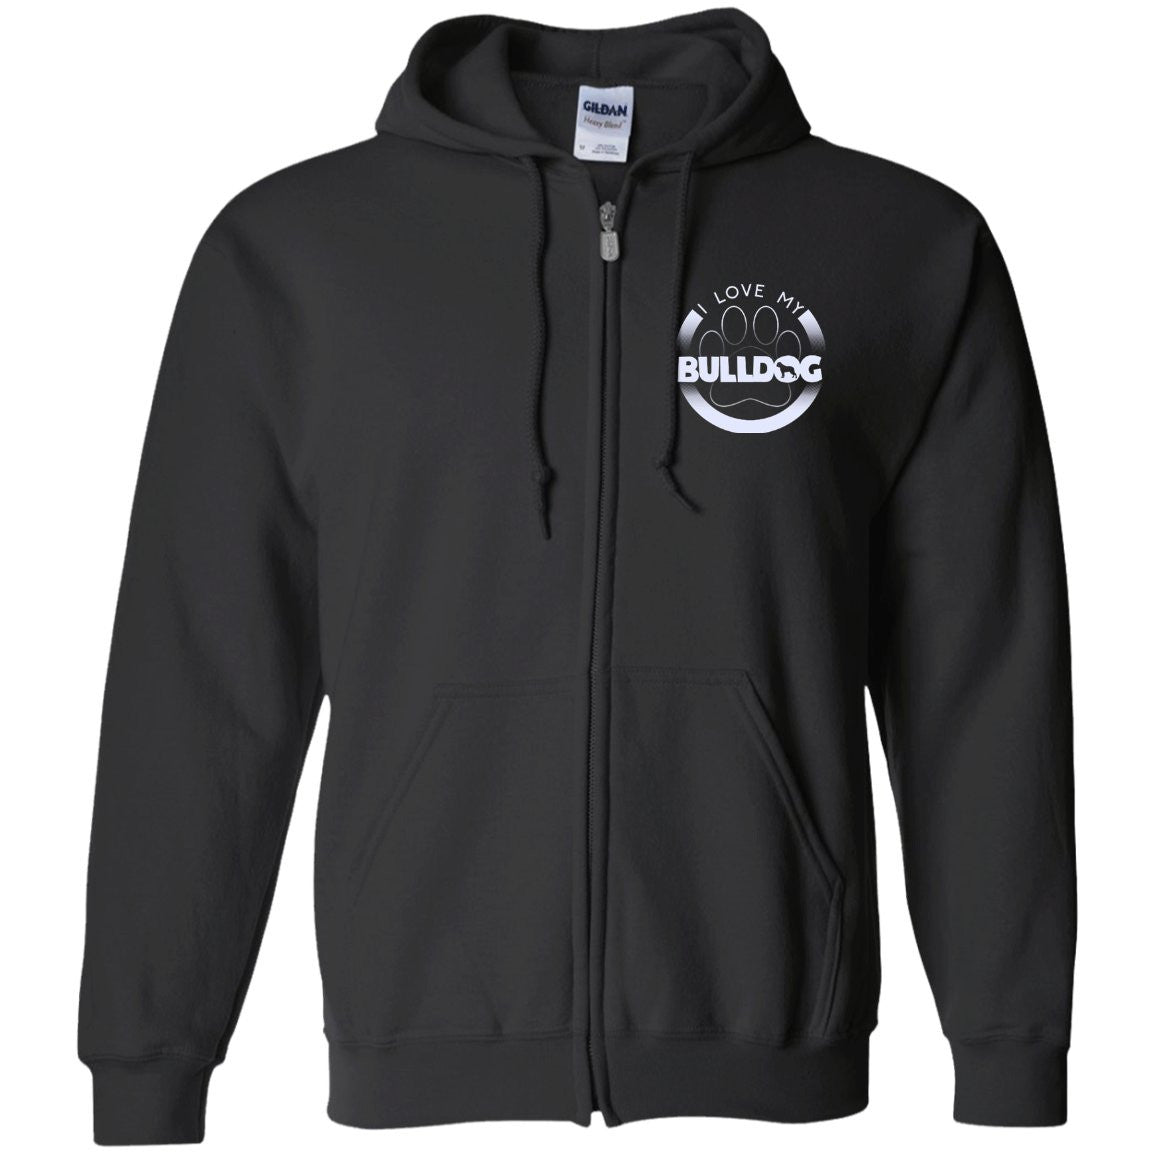 I LOVE MY BULLDOG (Paw Design) - Front Design  - Embroidered Zip Up Hooded Sweatshirt